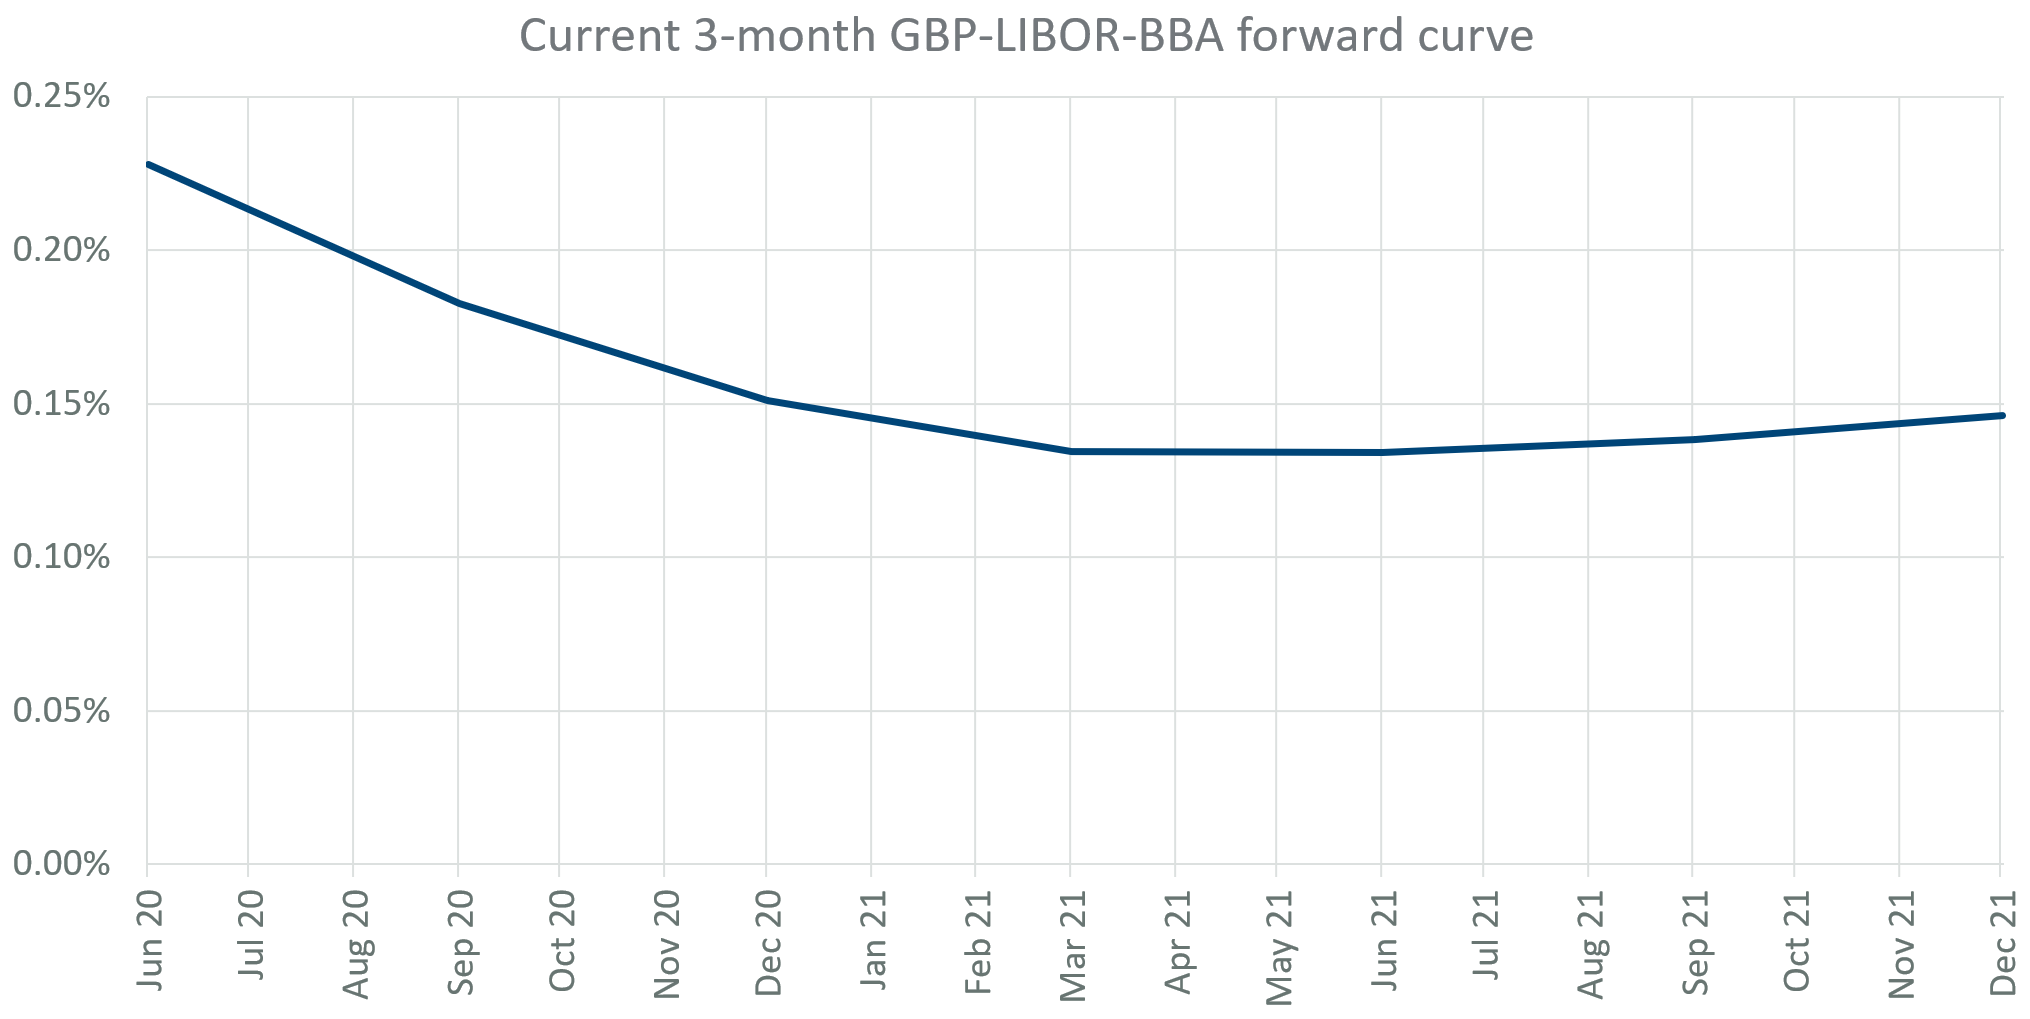 Current 3-month GBP-LIBOR-BBA forward curve